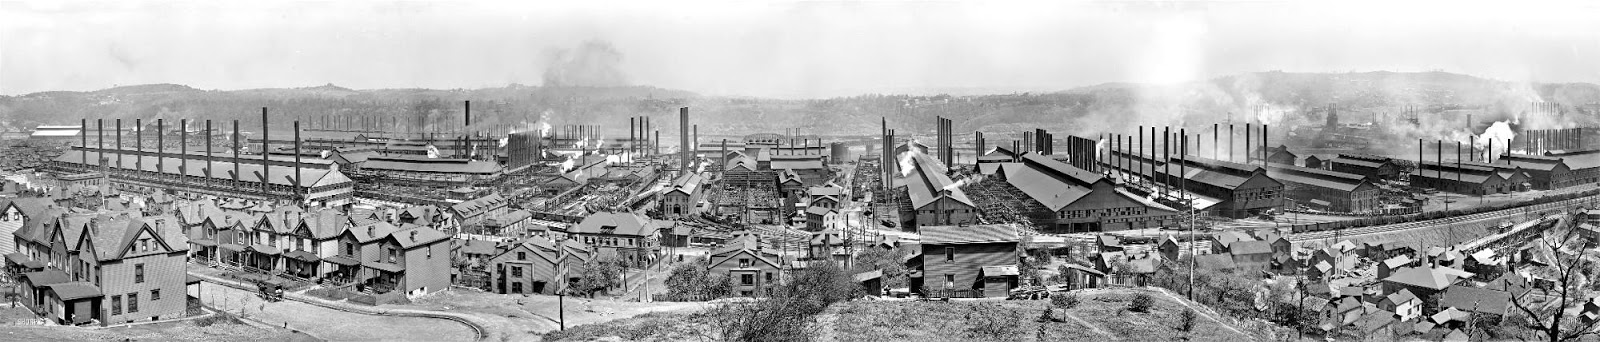 a look at the steel mill immigrants of industrial america Many european immigrants without industrial skills flooded into american  factories and steel mills these new comer's came in search of better economic .